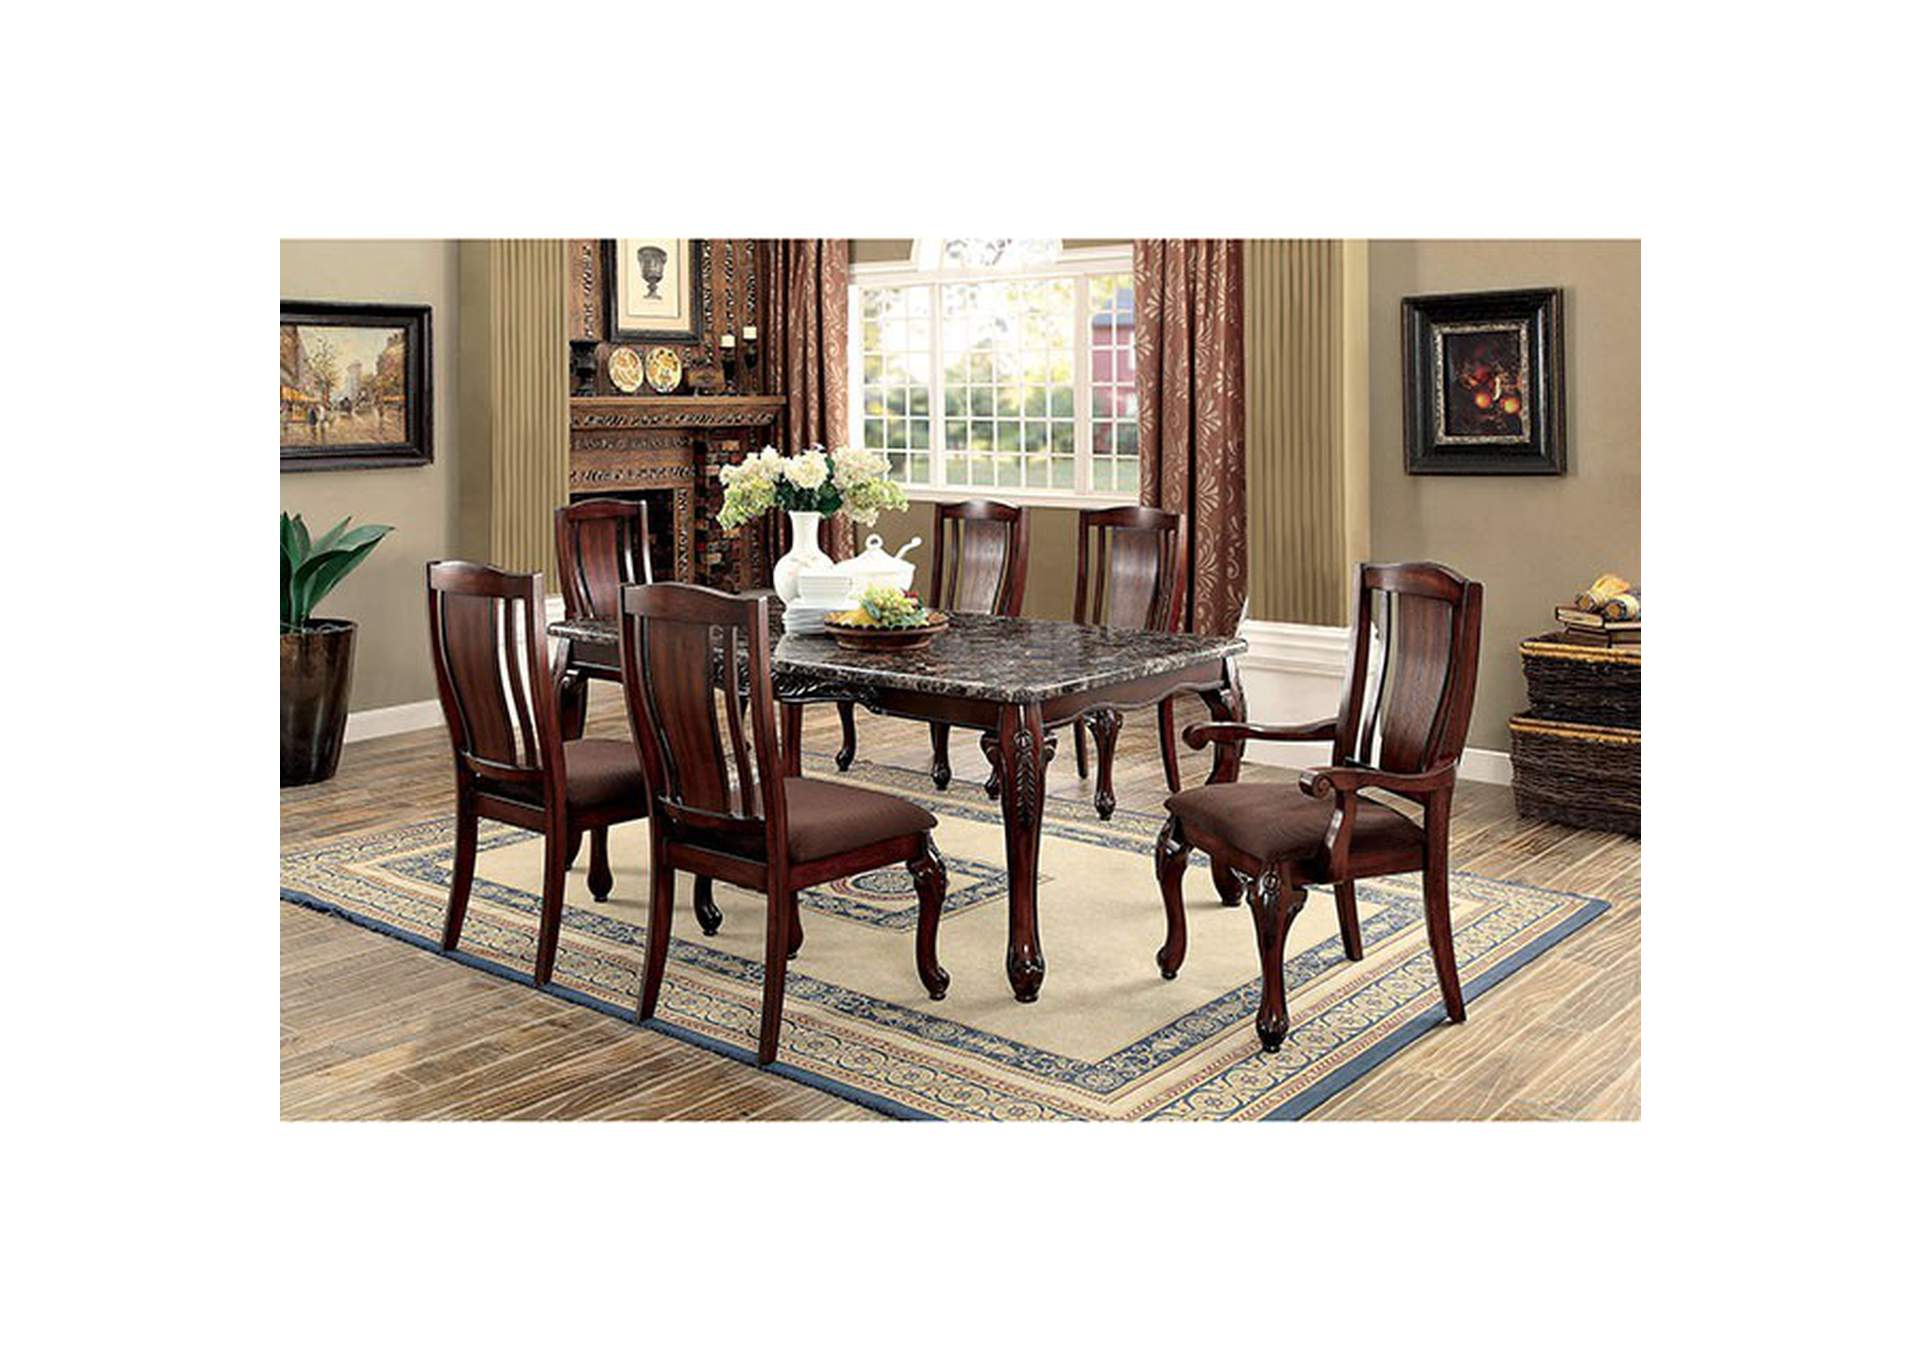 ff05c6e11b 359336 Johannesburg I Brown Cherry Faux Marble Dining Table w/4 Side Chairs